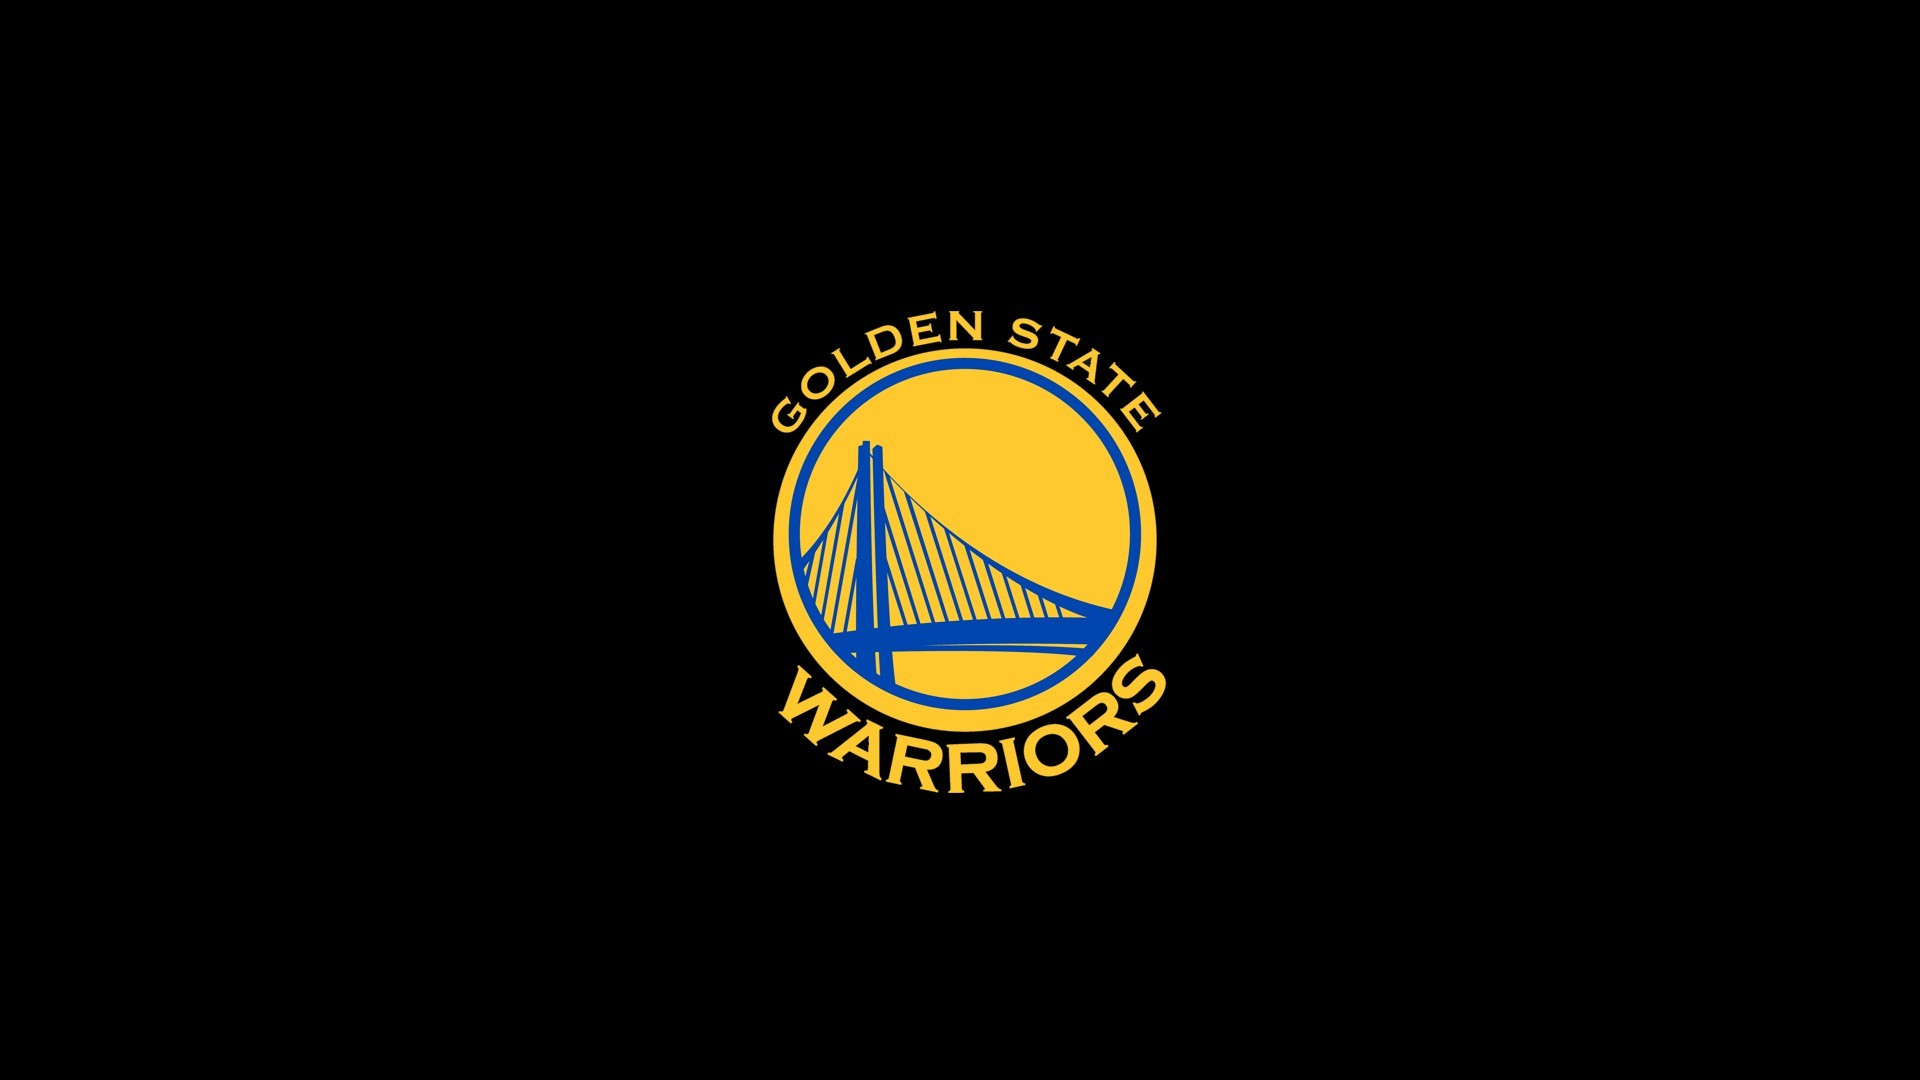 Res: 1920x1080, Golden State Warriors Logo Desktop Wallpapers with image dimensions   pixel. You can make this